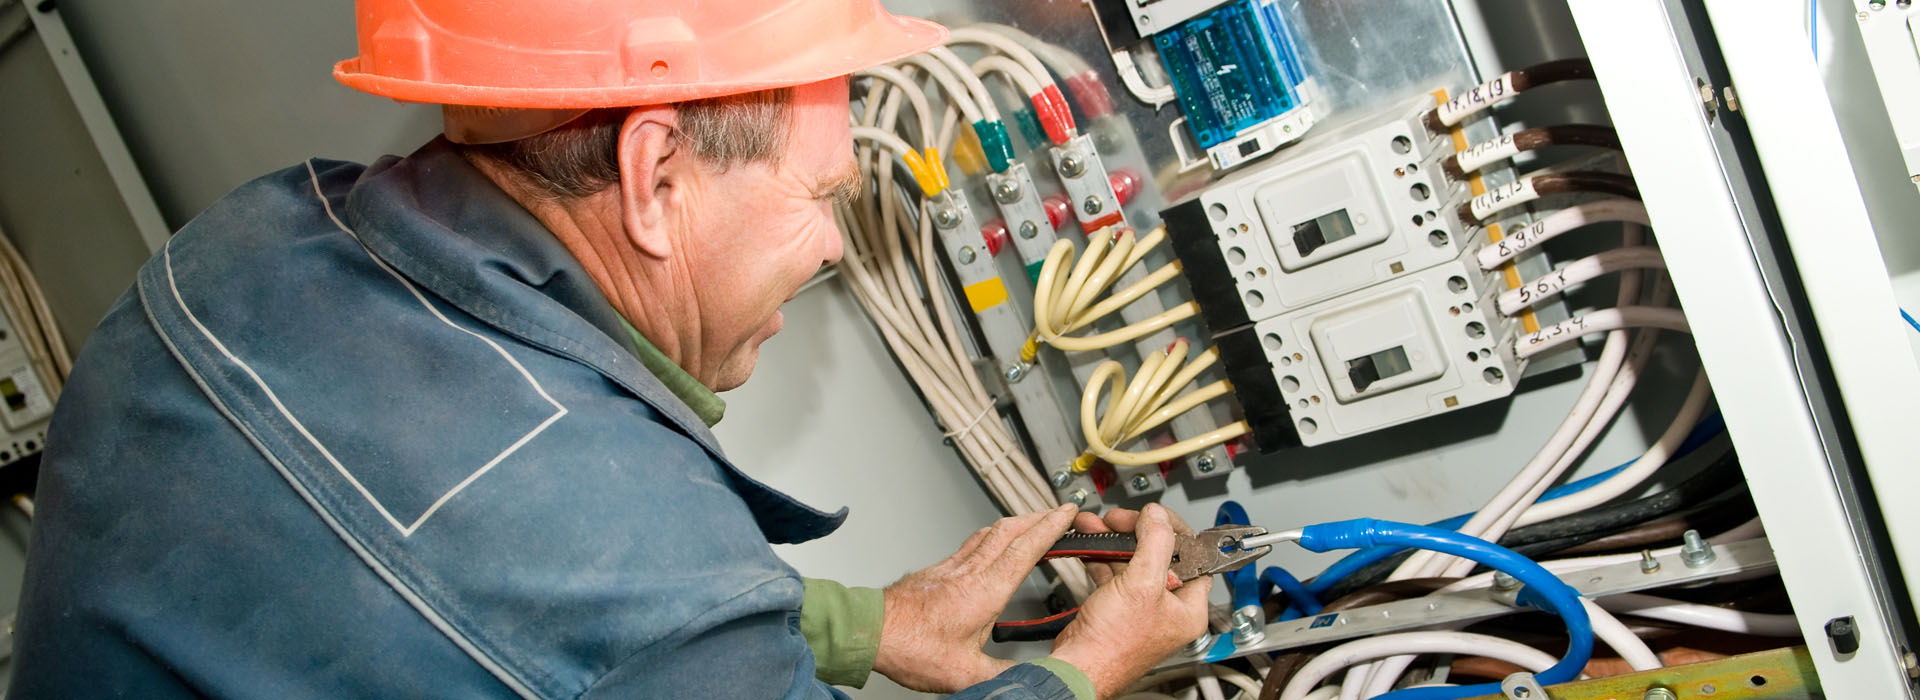 Vision Electrical Ltd General And Contractors Residential Electrician In Toronto House Repair Services